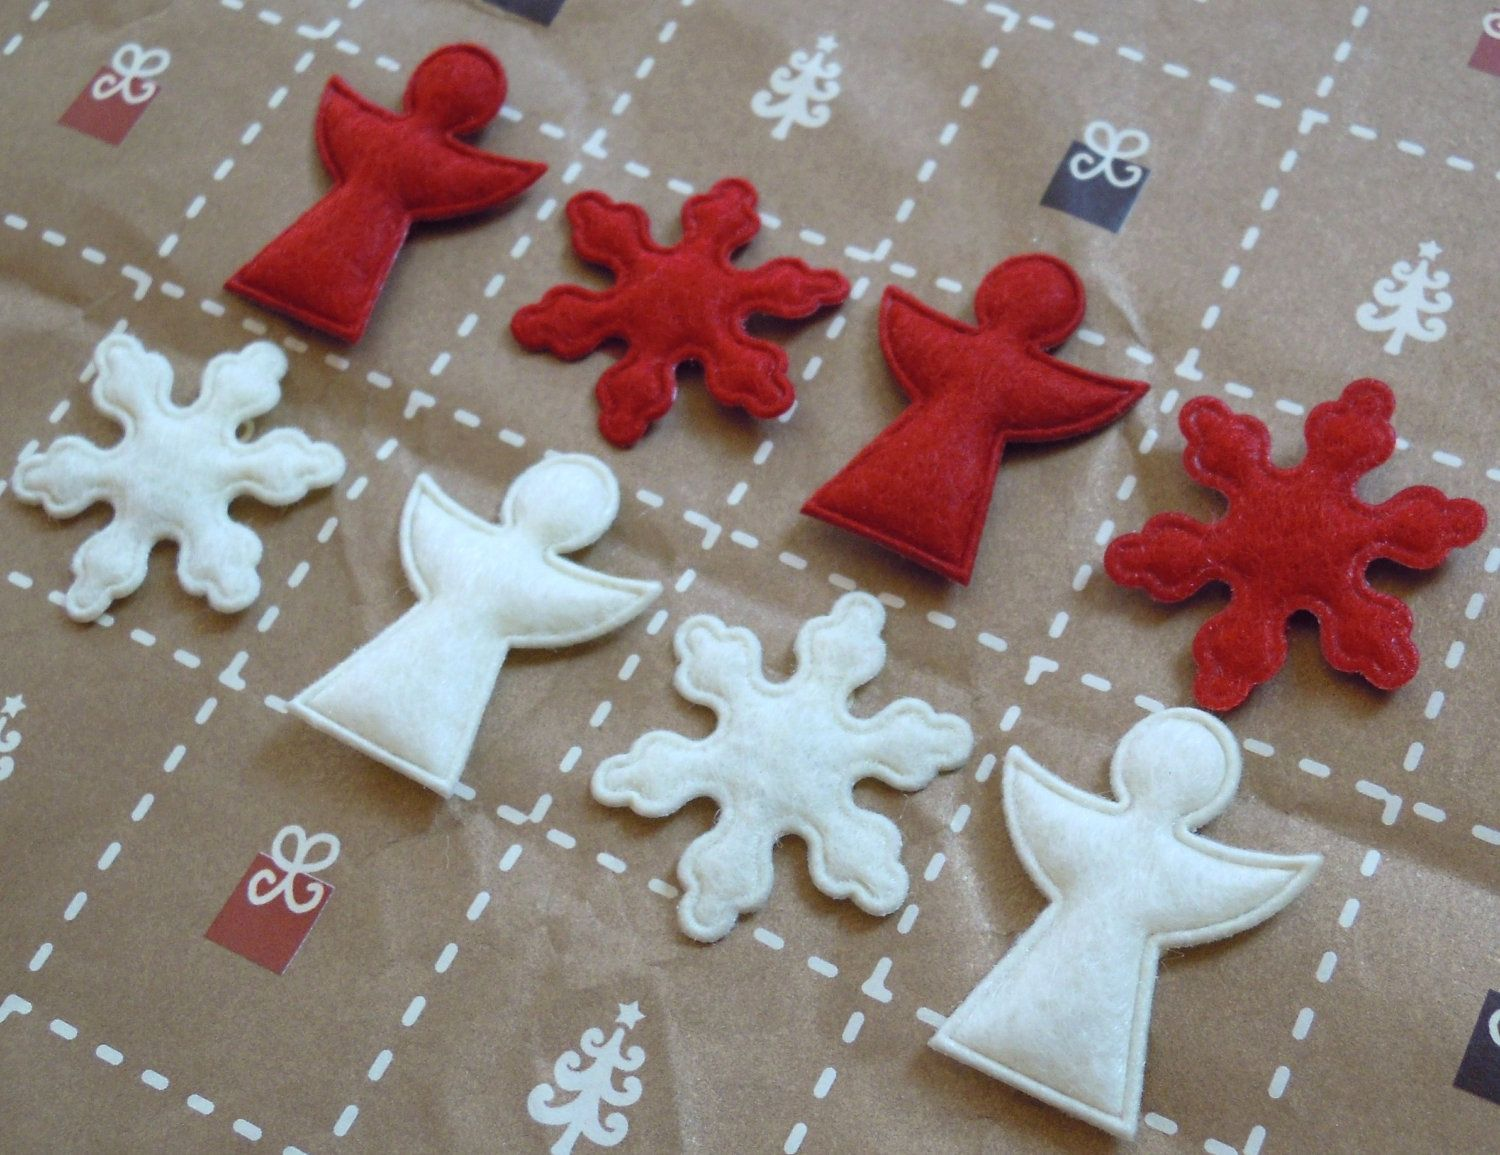 Cute felt angels and snowflakes - holly red and cream - set of 8 pieces. $2.40, via Etsy.